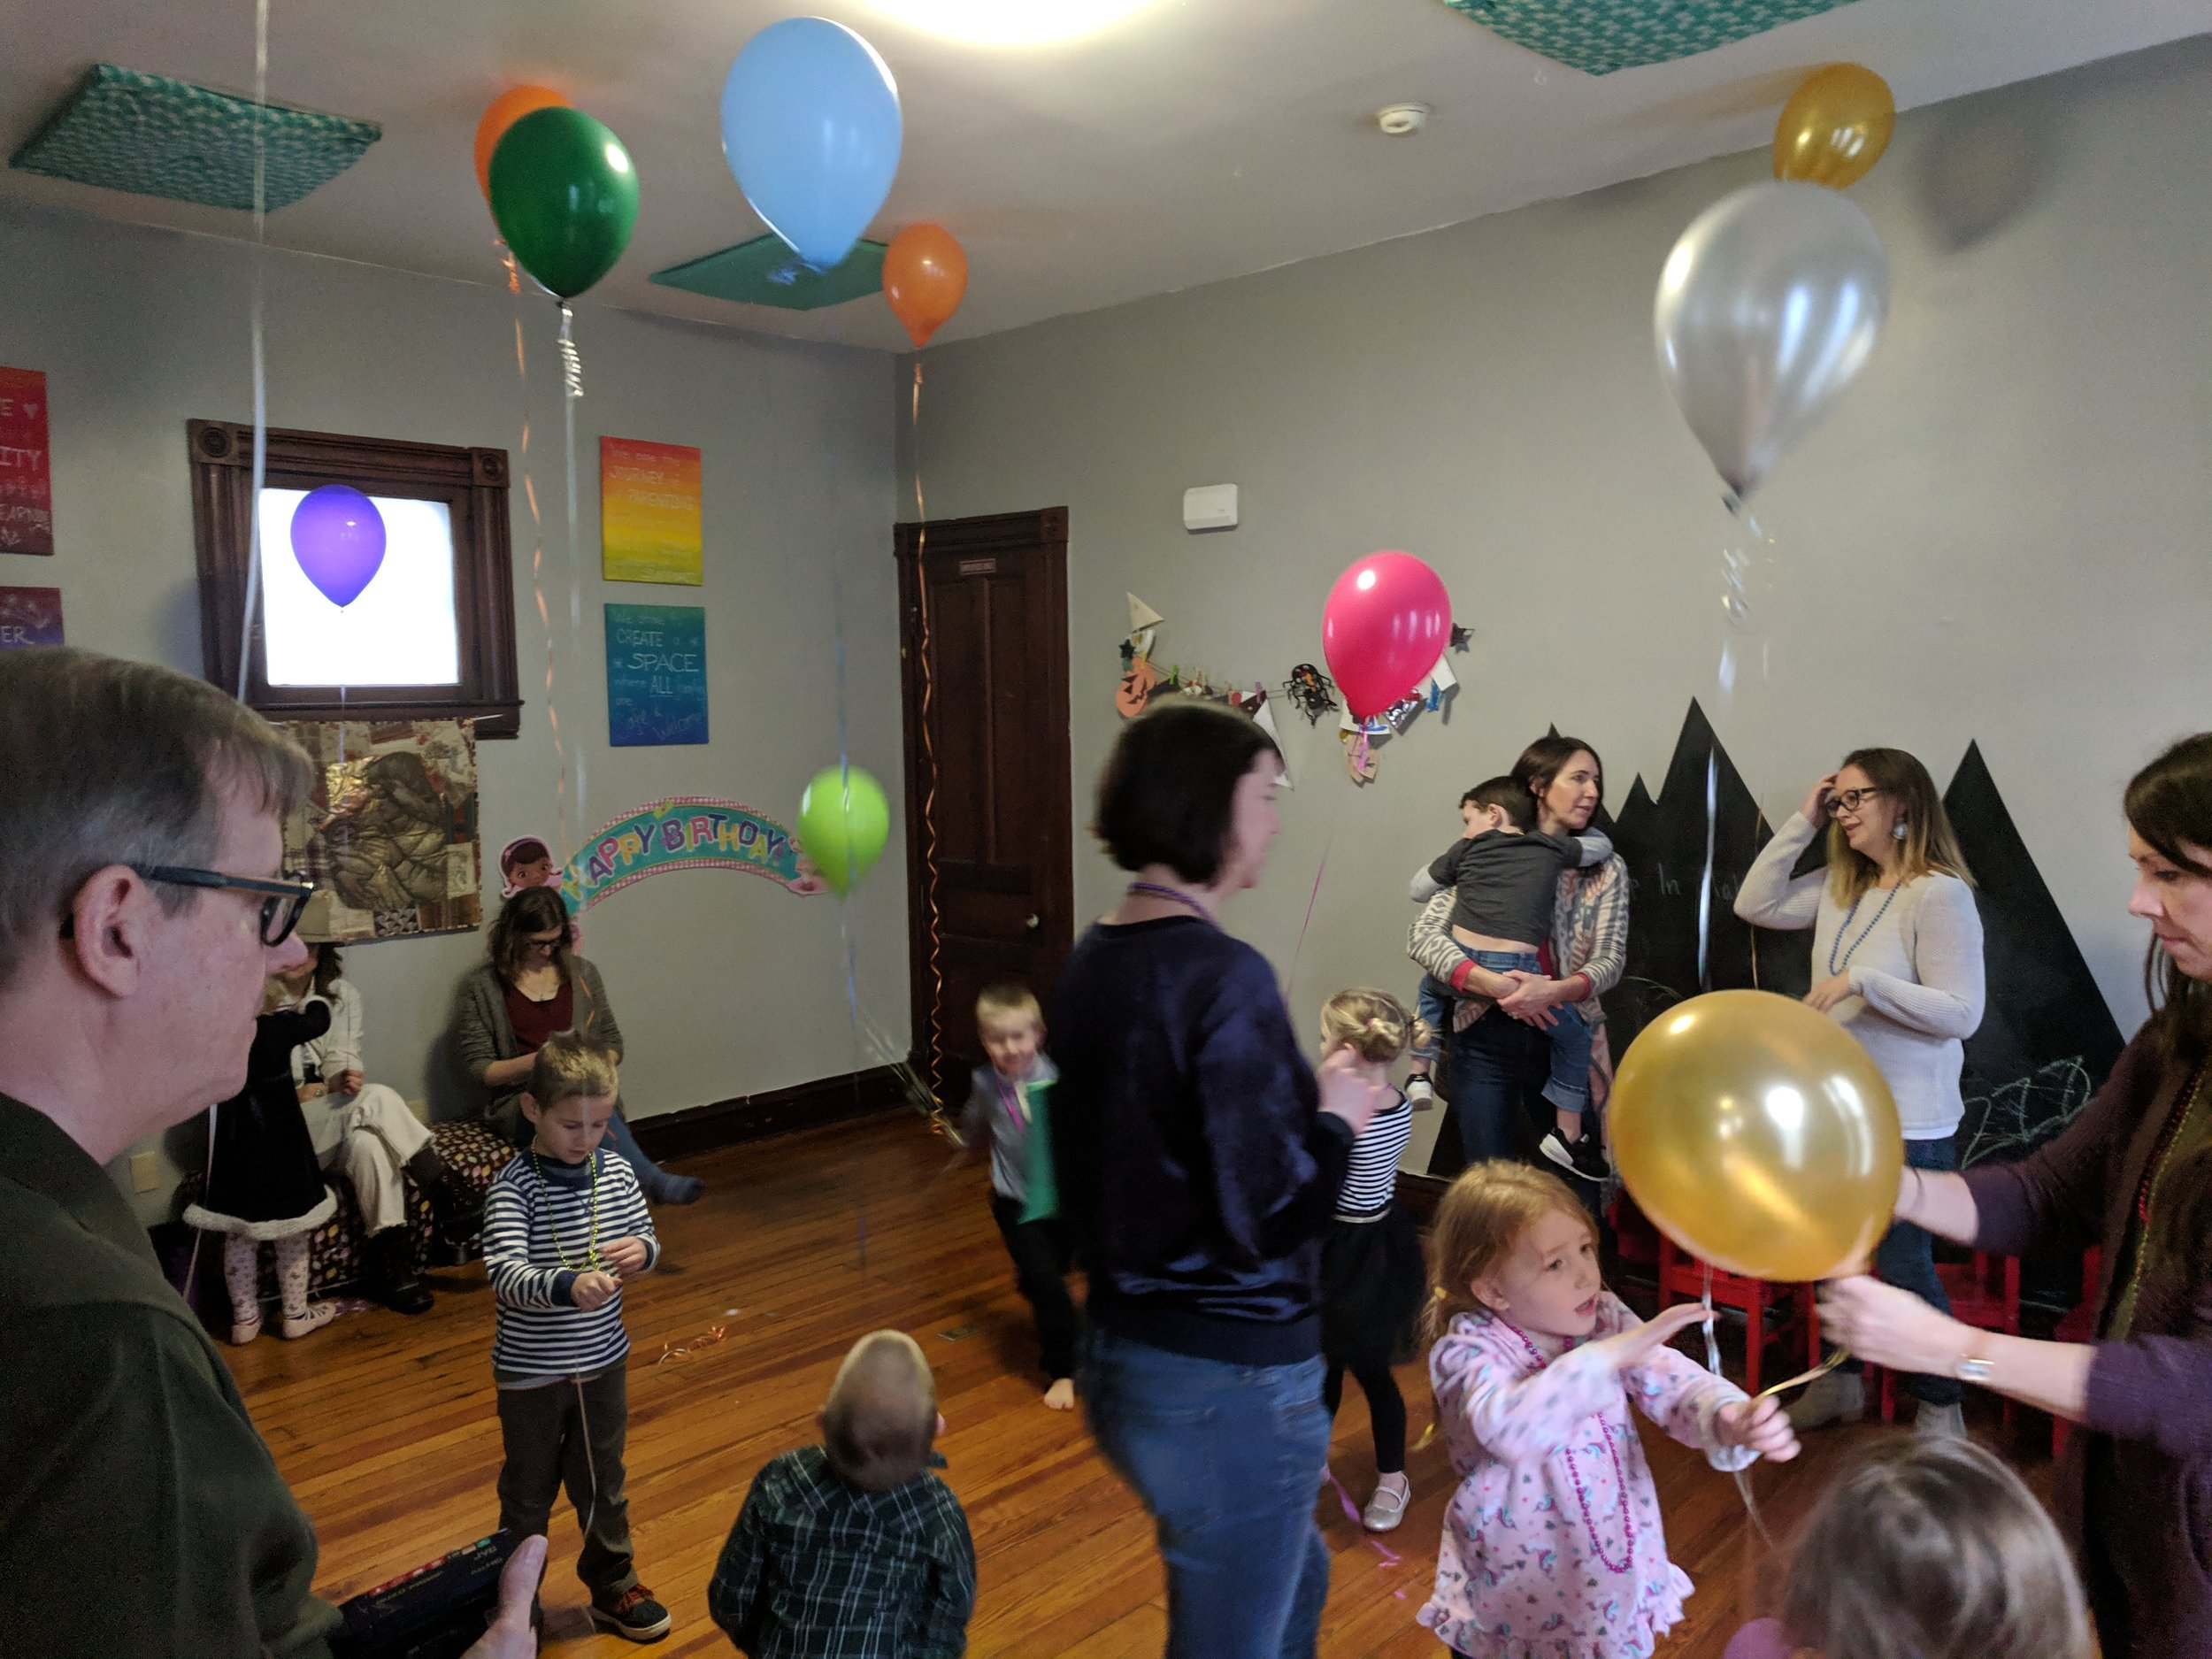 You can host a birthday party at Mama's Hip! - Our kid-friendly, fun space is the perfect place for your next celebration! Contact us at mamashipfamilycooperative@gmail.com to inquire about rates and book your date.